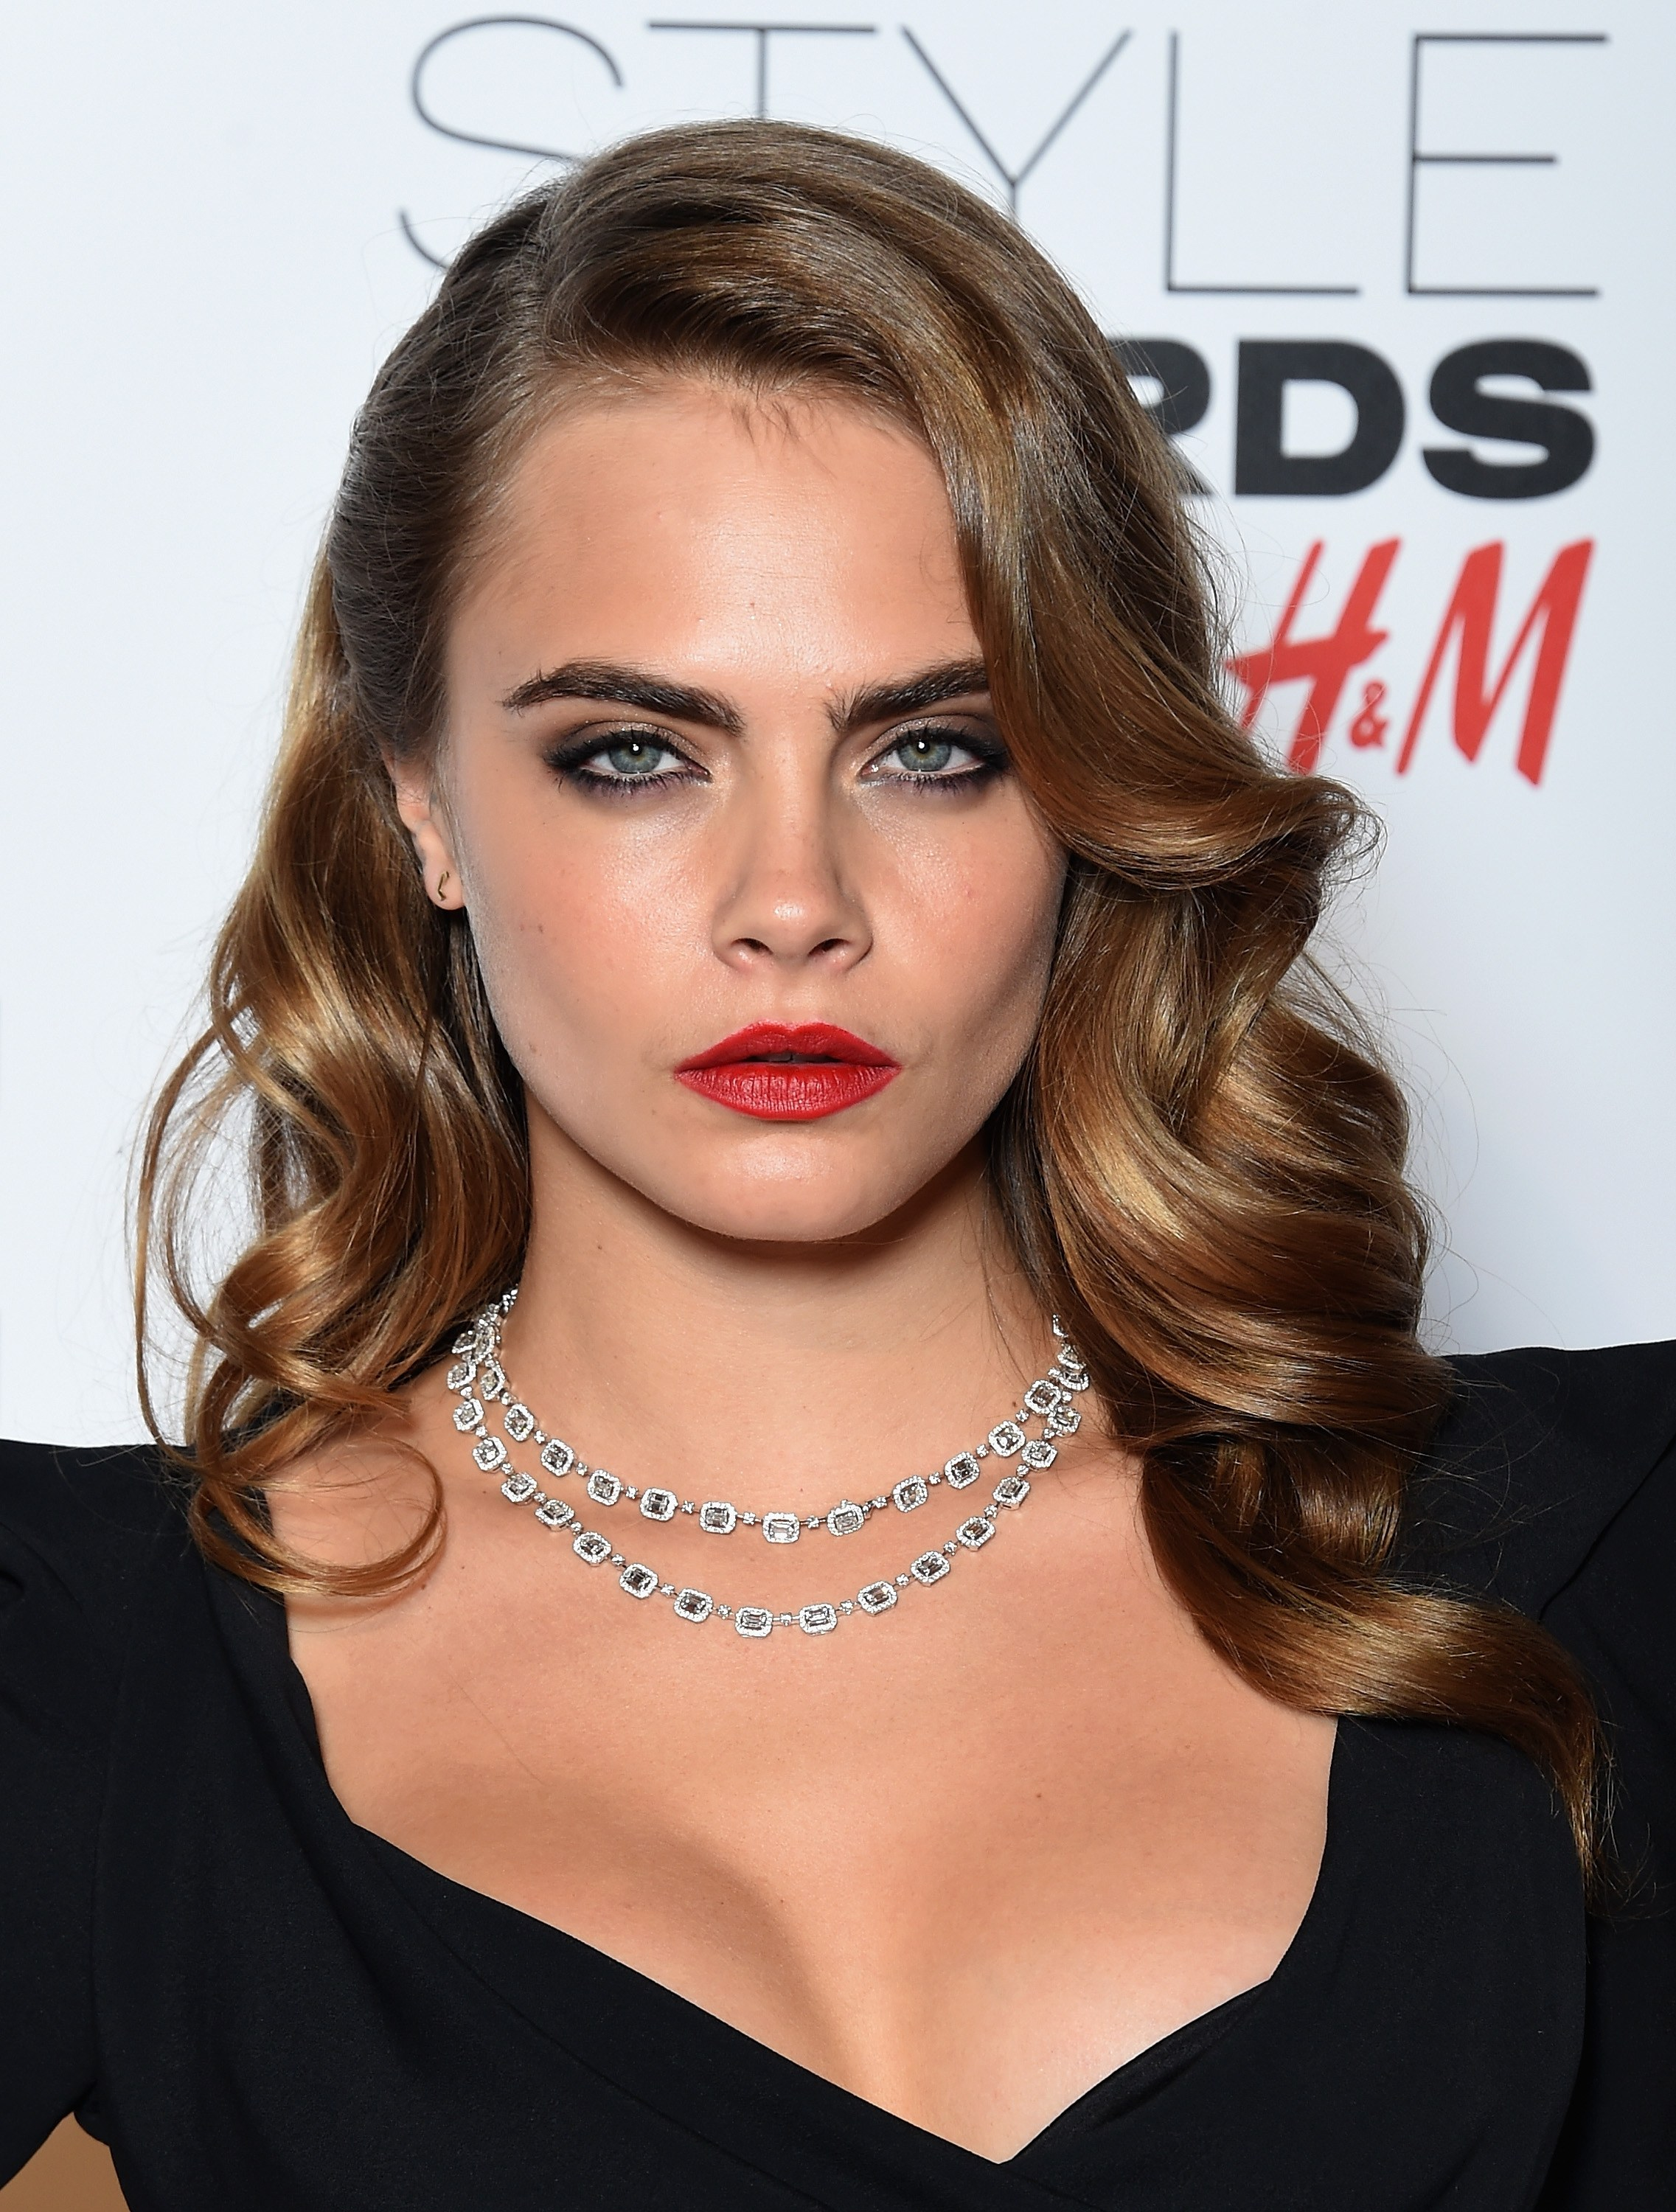 Cara Delevingne retro Hollywood hairstyles